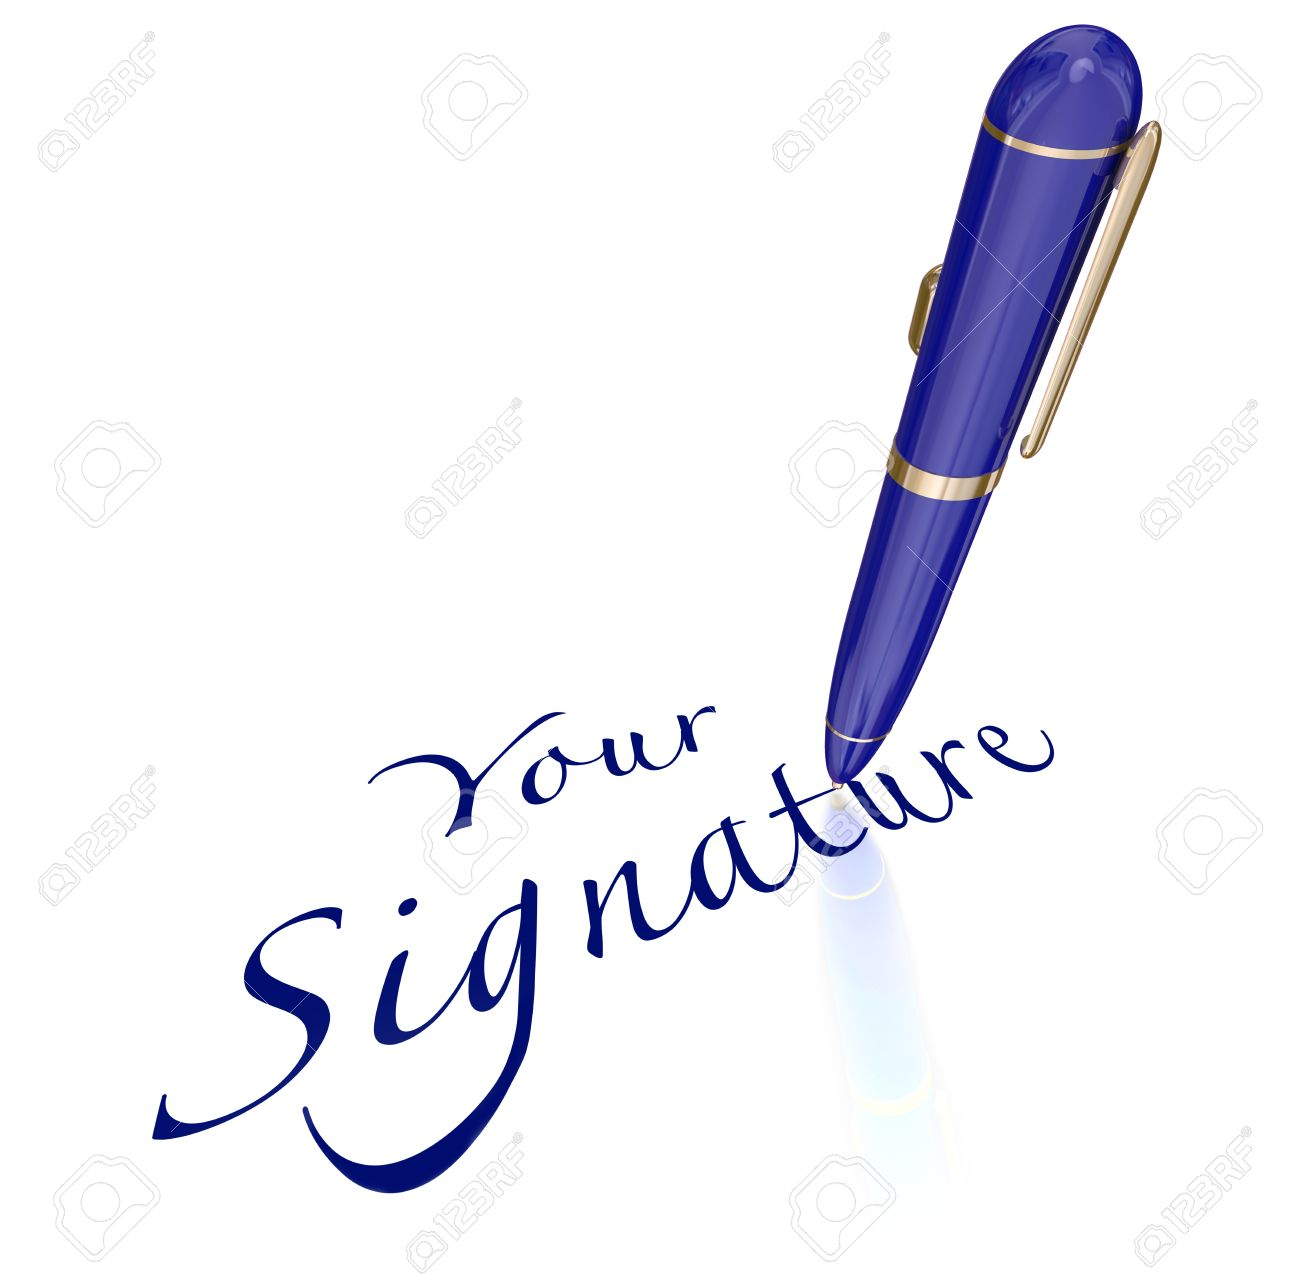 Your Signature Words And Pen Signing Name Or Autograph On Contract ...